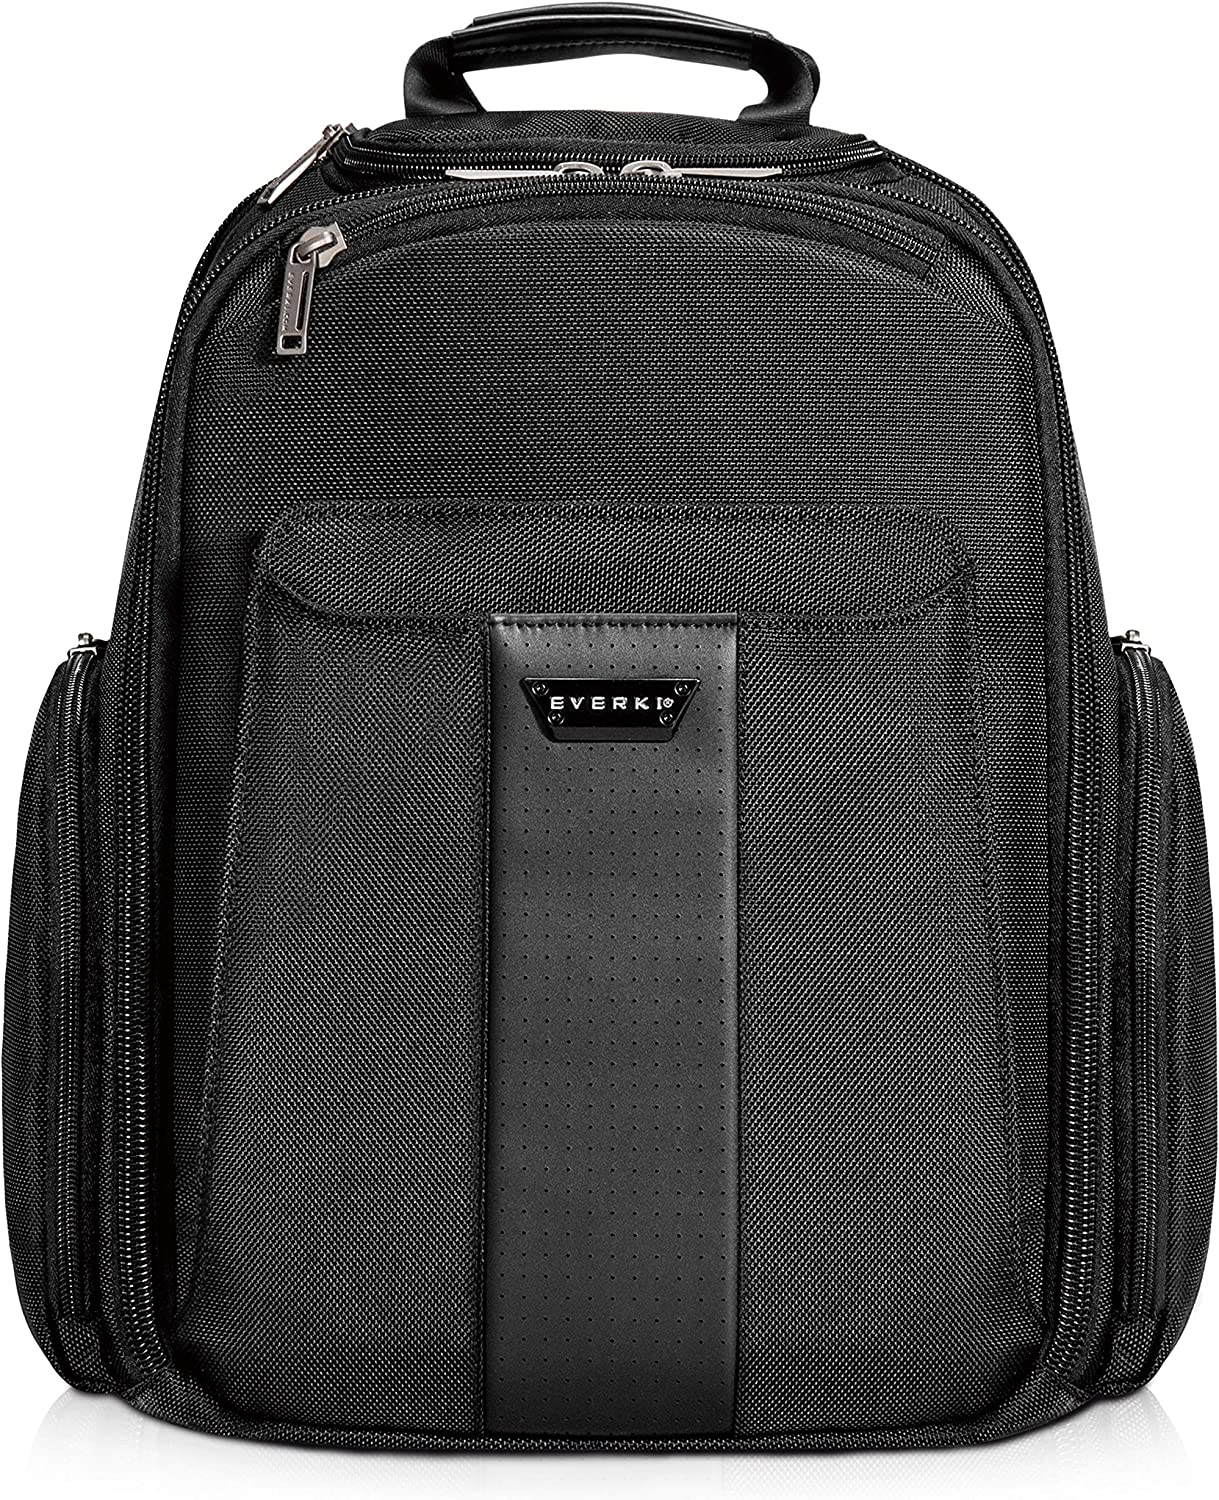 Everki Versa Premium Checkpoint Friendly Laptop Backpack for 14.1-Inch MacBook Pro 15 (EKP127)